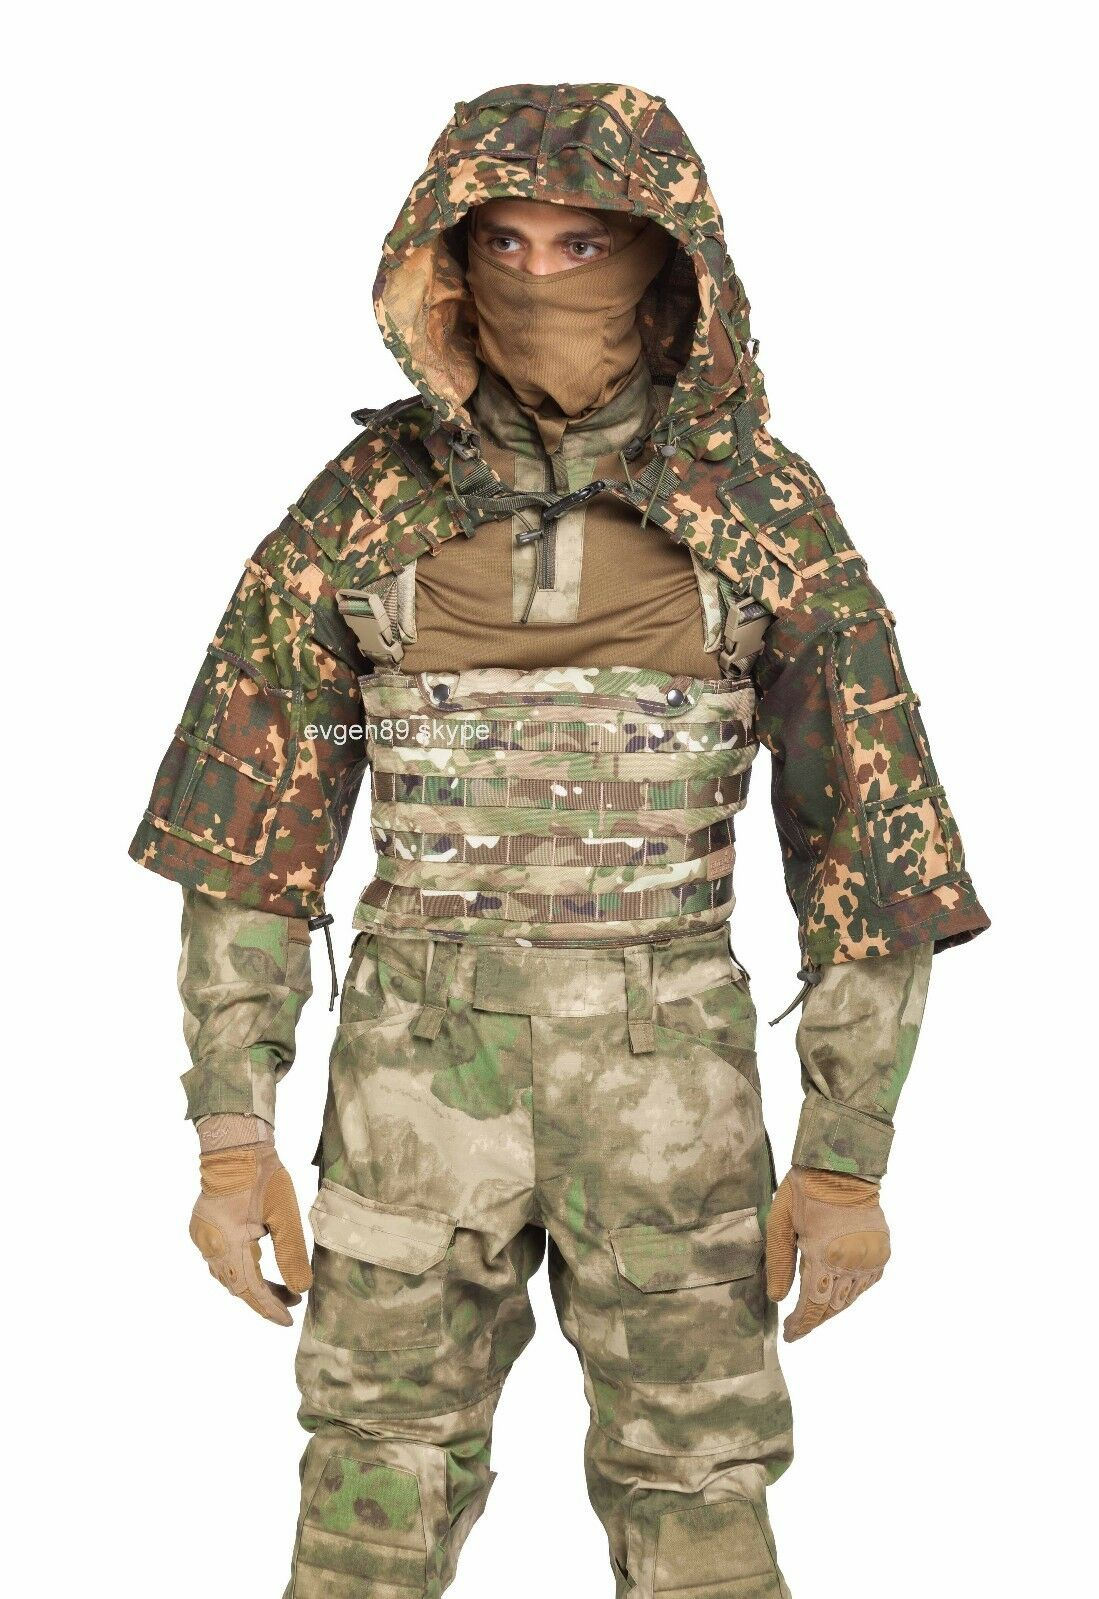 Disguise Sniper Coat   Viper Hood  Russian Spetsnaz Ripstop Izlom   Skol  save up to 70%